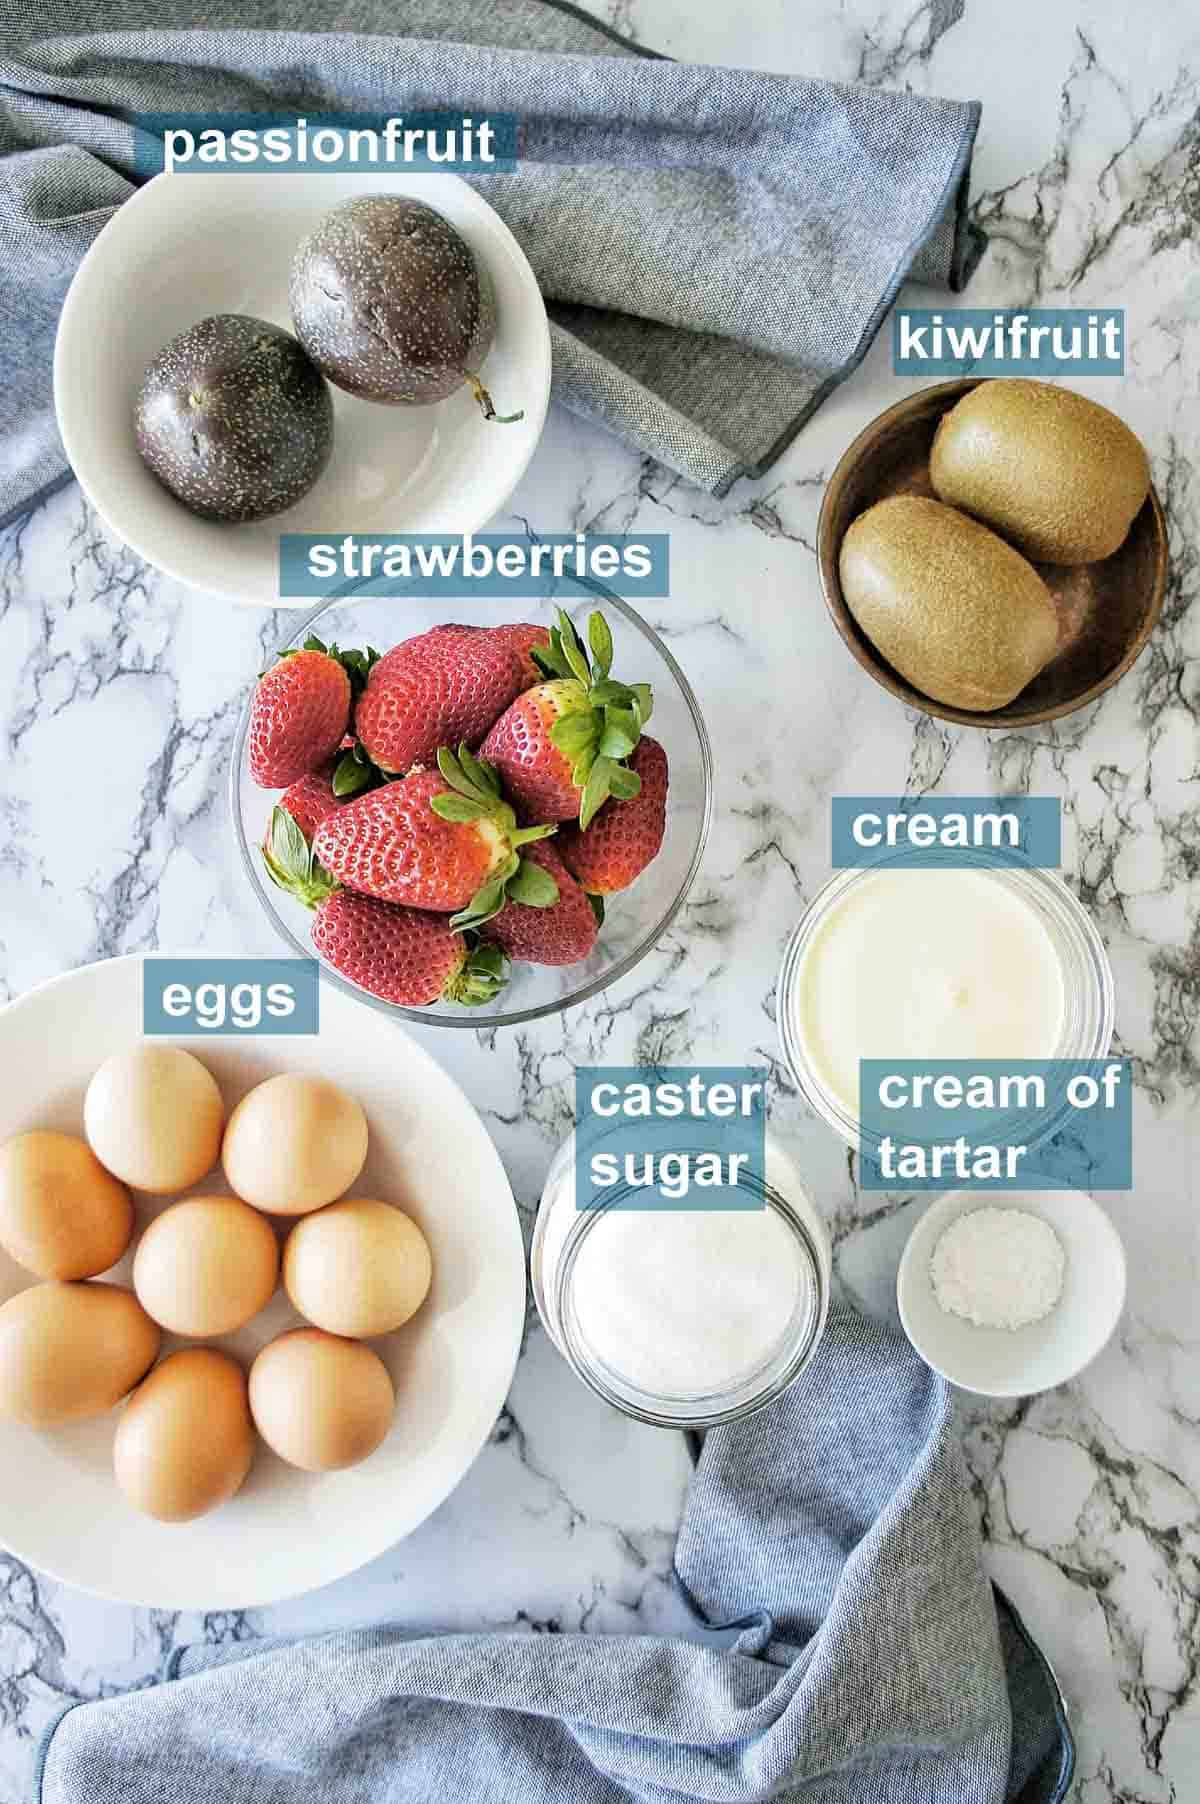 8 Egg Pavlova ingredients with text overlay